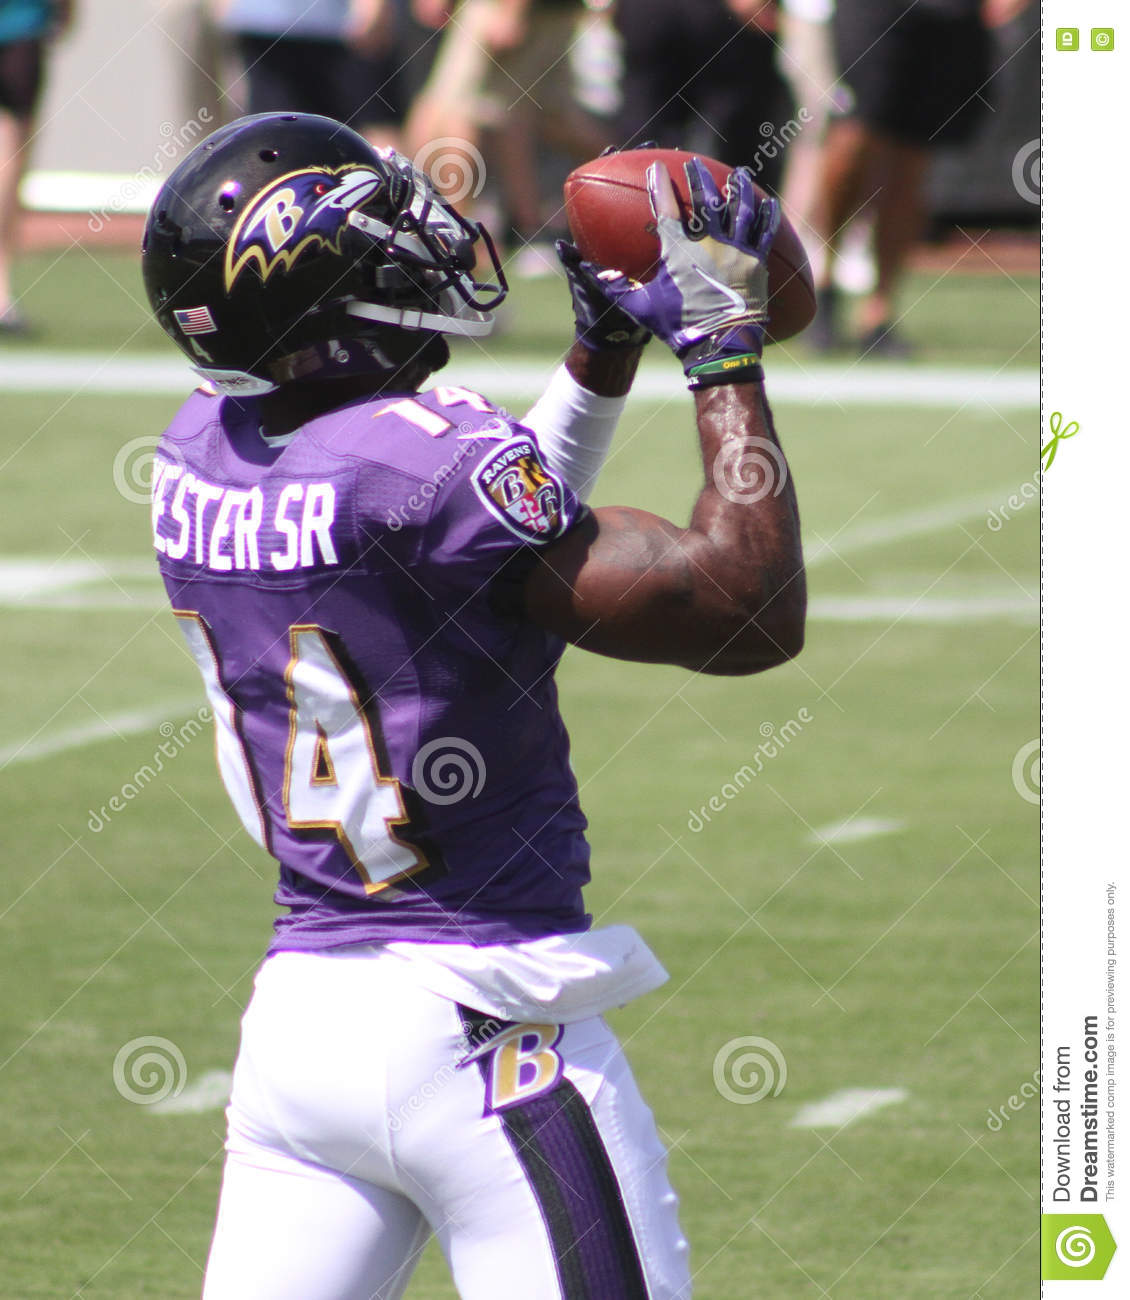 sale retailer ca4d0 c173a Devin Hester, Sr editorial photography. Image of sports ...